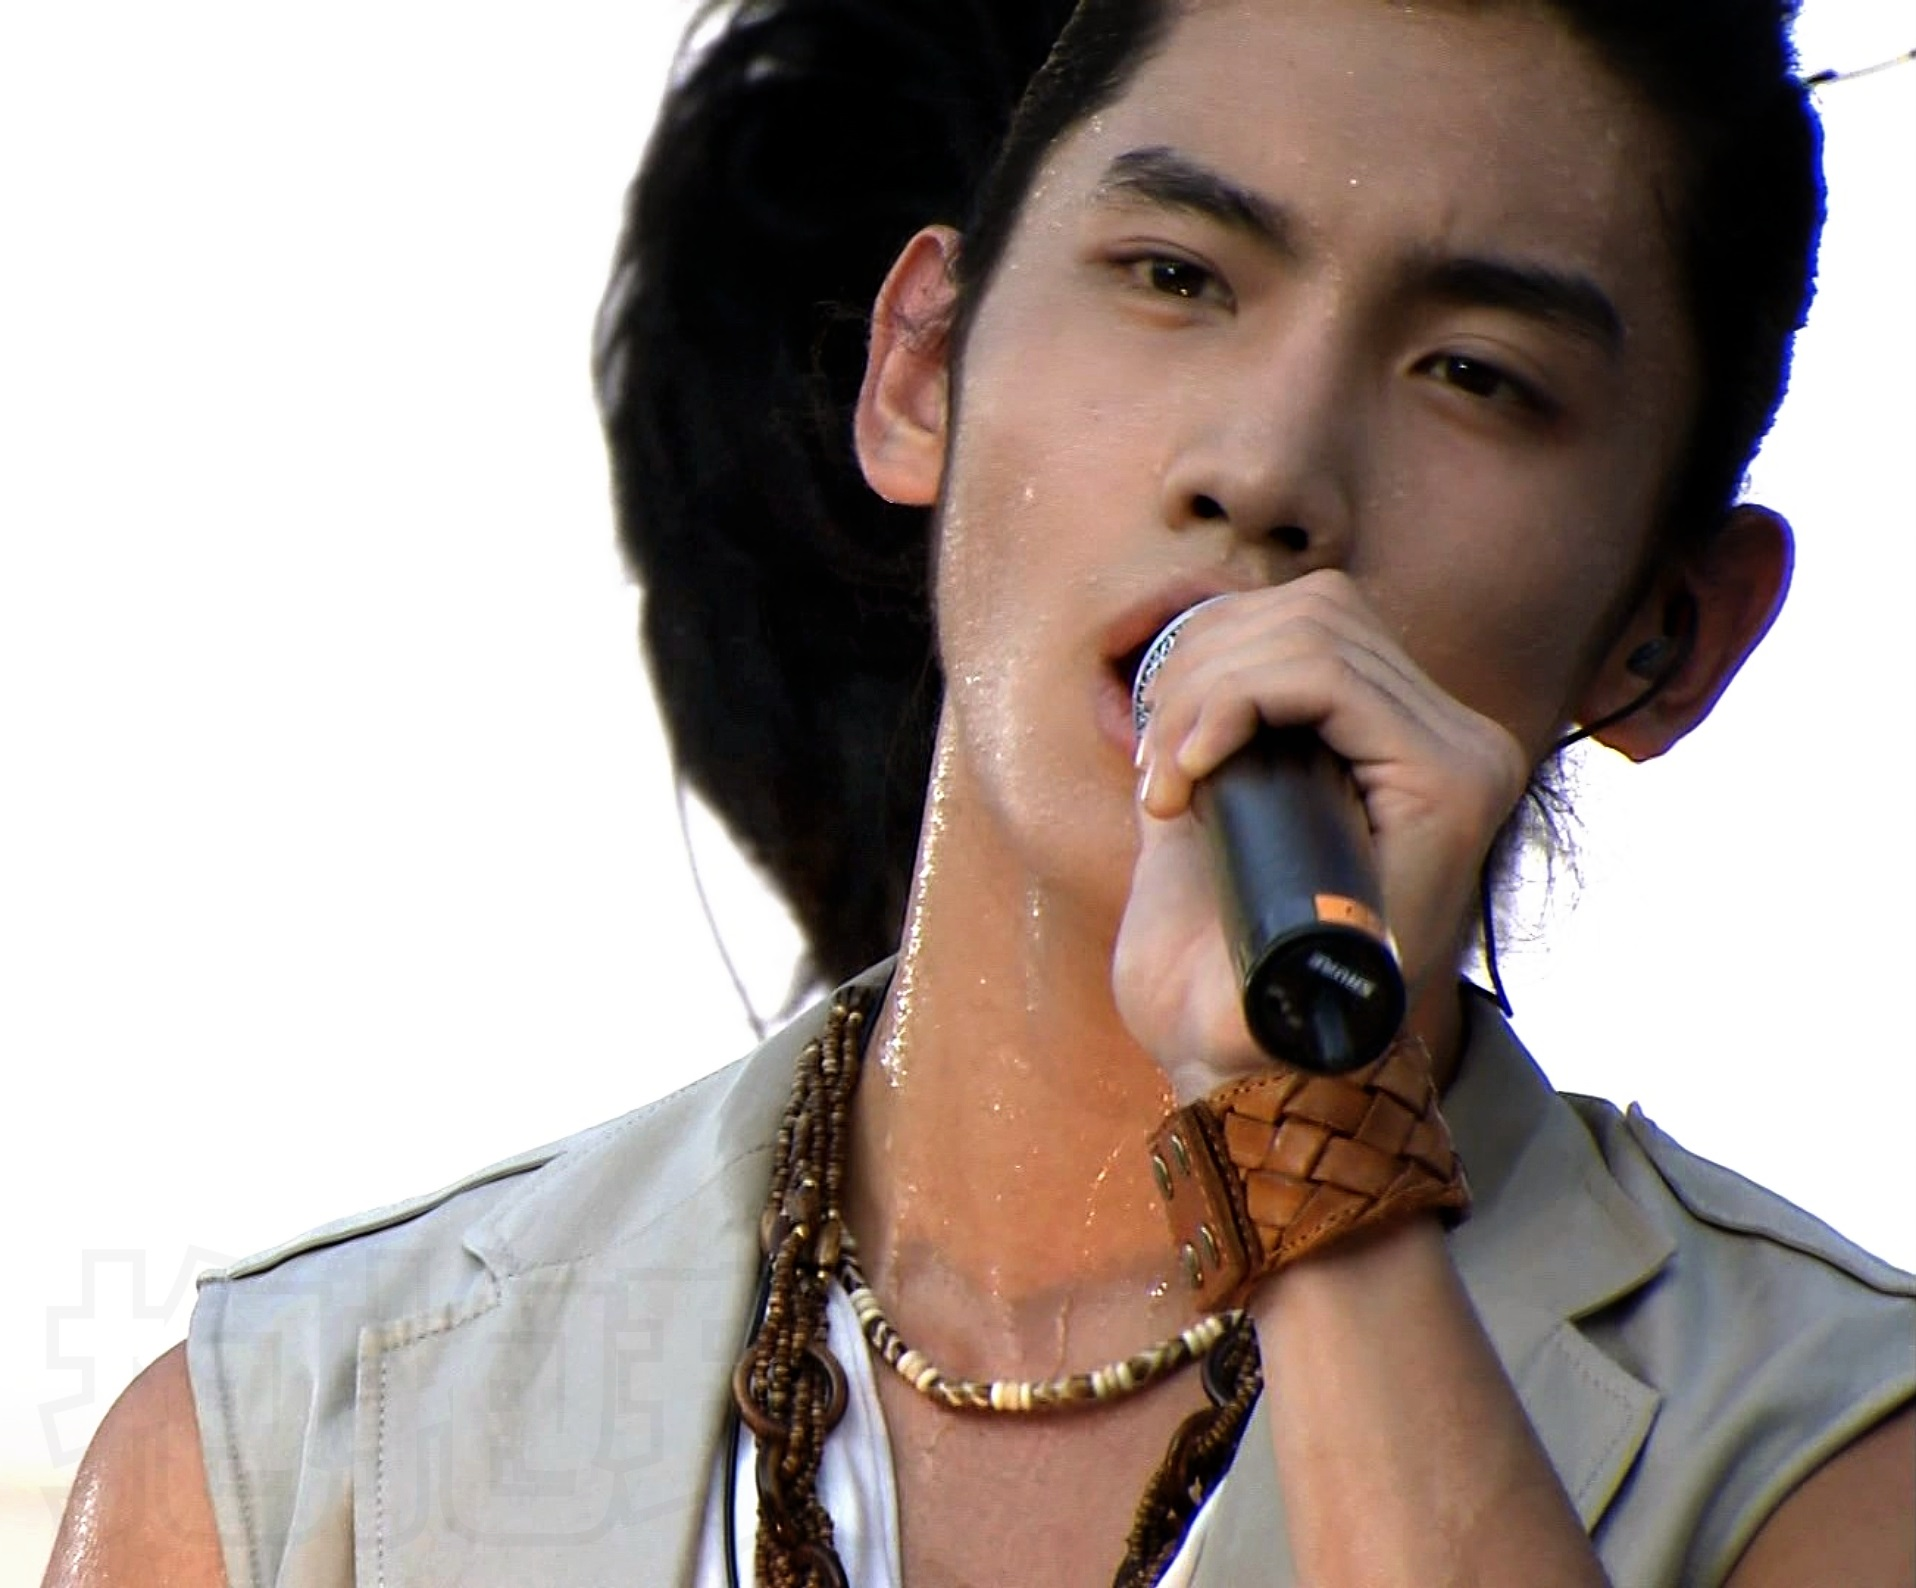 anation2007 Loving You // SCM 14 pic